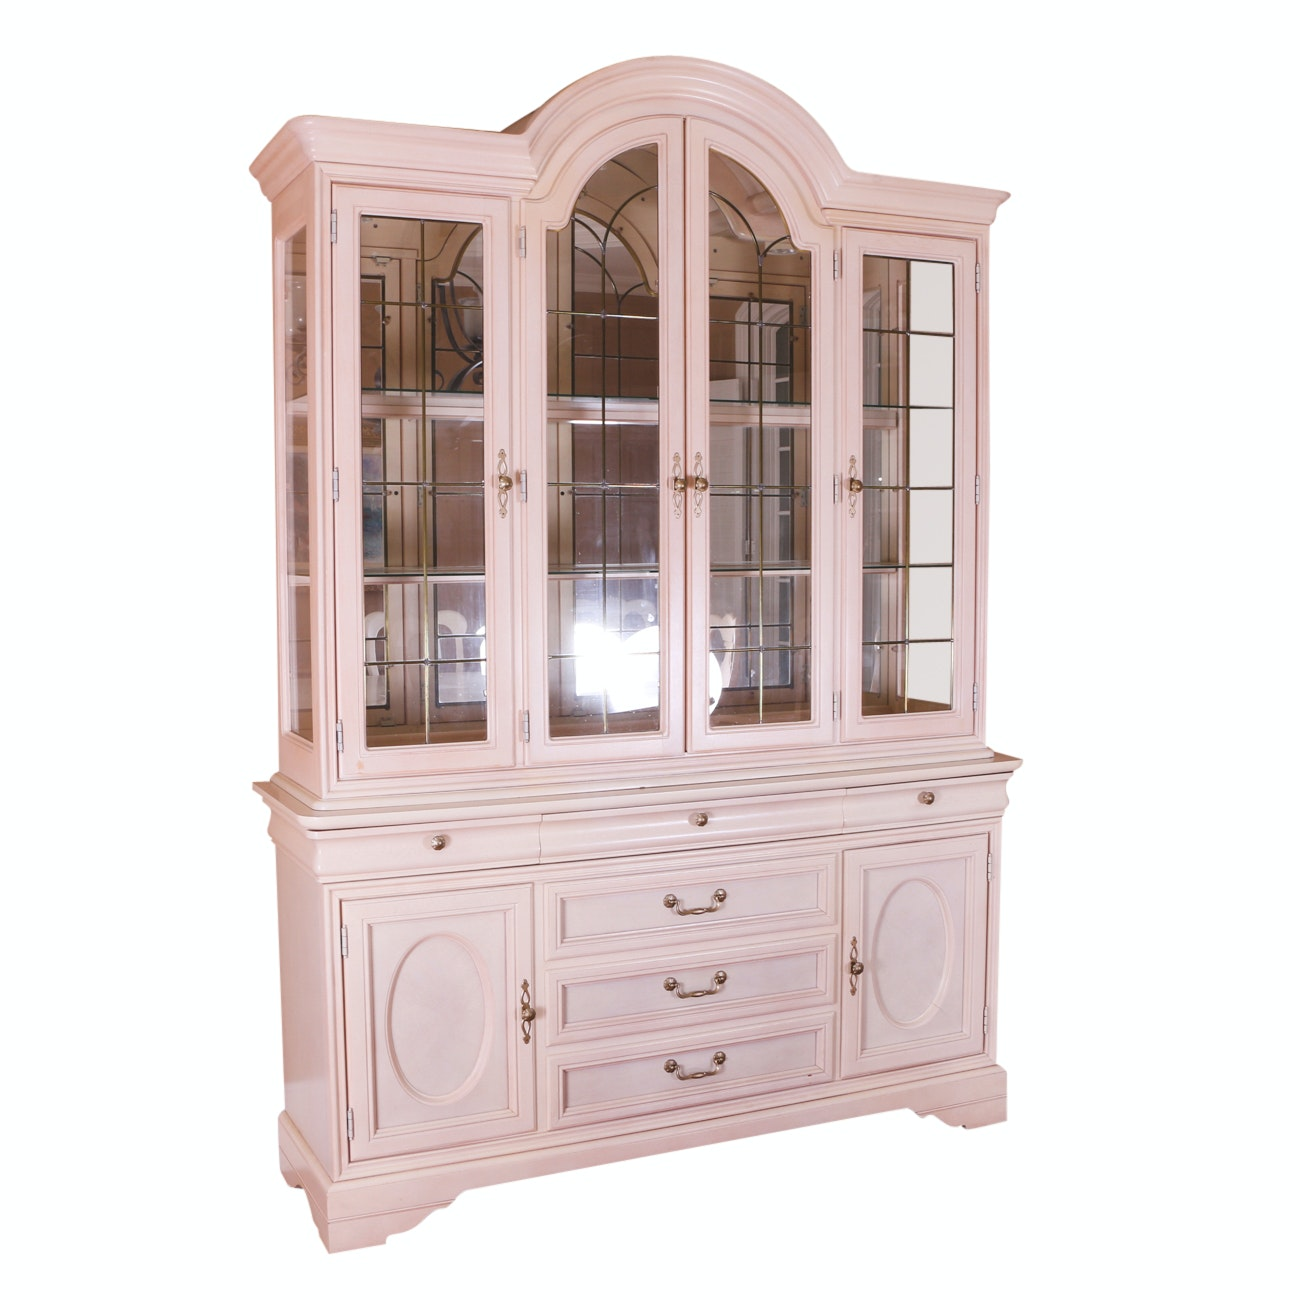 Traditional China Cabinet in White Finish by Lexington Furniture